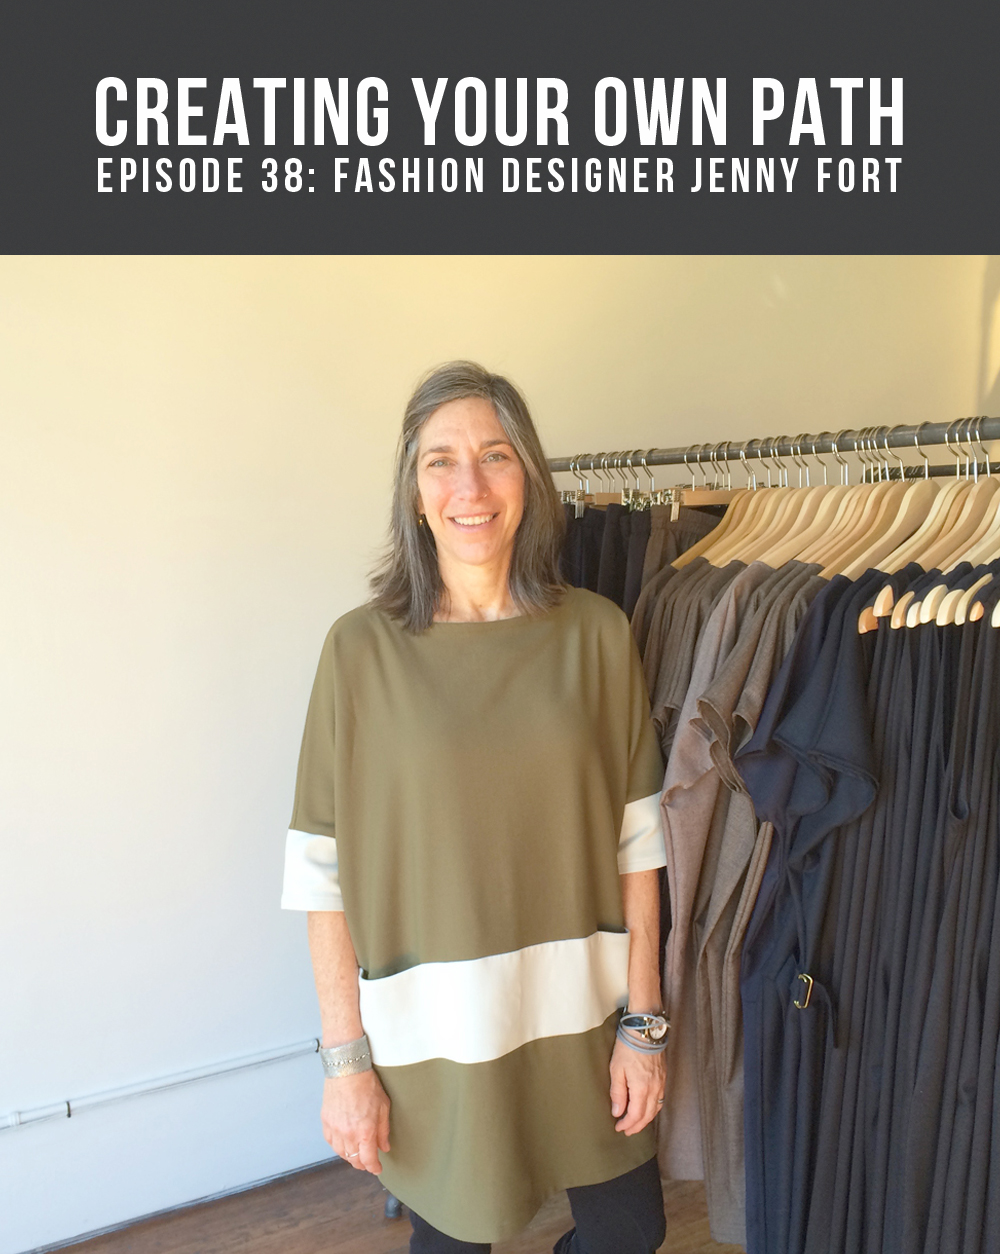 Episode 38 - Creating Your Own Path with Fashion Designer  Jenny Fort